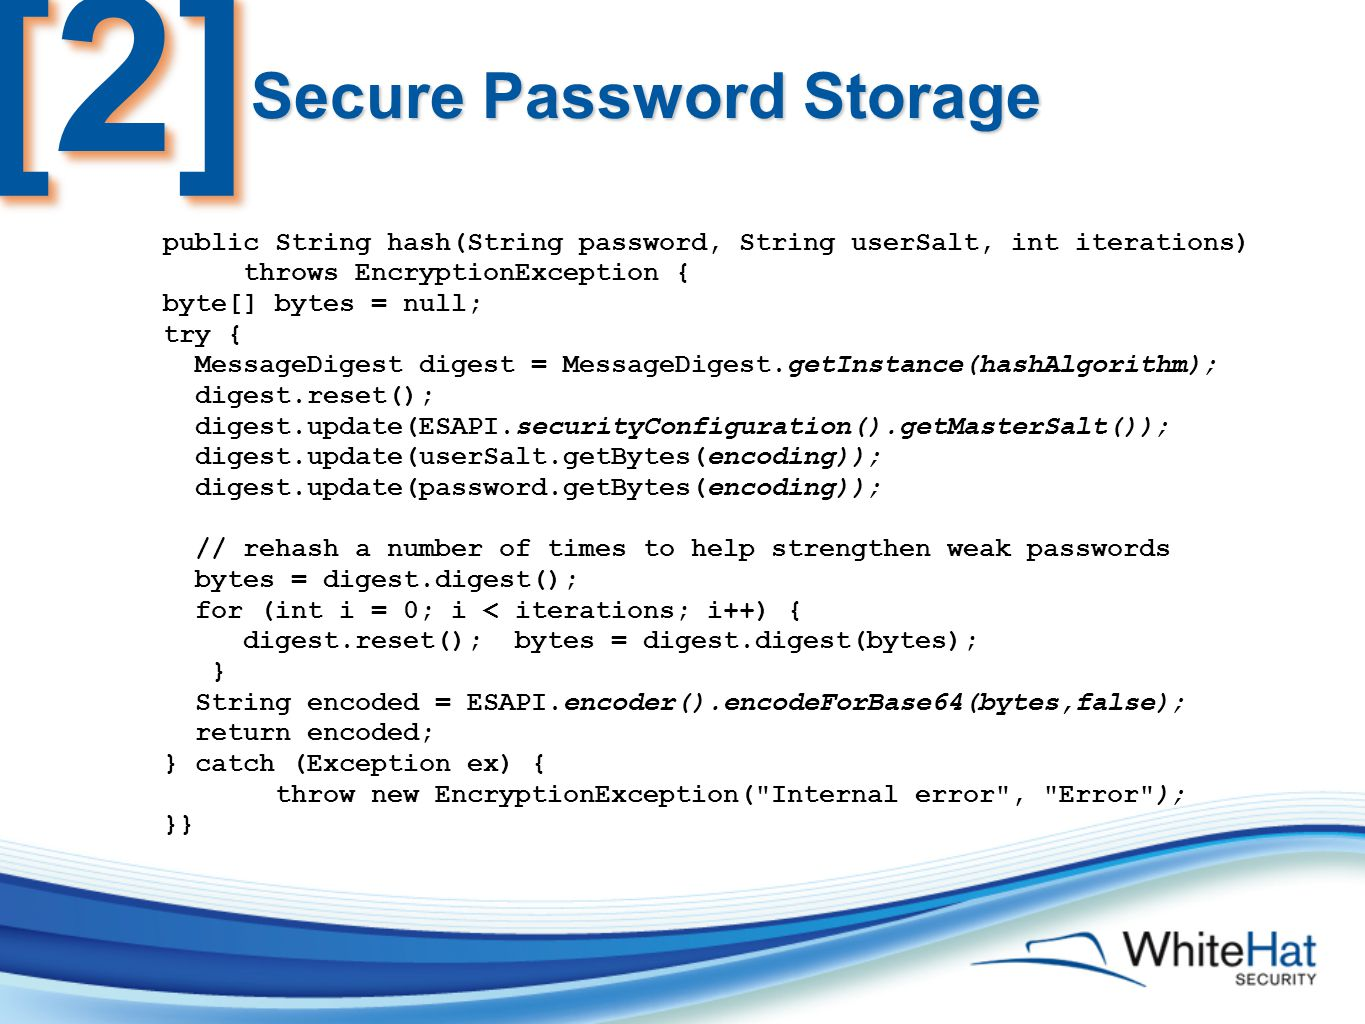 Secure Password Storage public String hash(String password, String userSalt, int iterations) throws EncryptionException { byte[] bytes = null; try { MessageDigest digest = MessageDigest.getInstance(hashAlgorithm); digest.reset(); digest.update(ESAPI.securityConfiguration().getMasterSalt()); digest.update(userSalt.getBytes(encoding)); digest.update(password.getBytes(encoding)); // rehash a number of times to help strengthen weak passwords bytes = digest.digest(); for (int i = 0; i < iterations; i++) { digest.reset(); bytes = digest.digest(bytes); } String encoded = ESAPI.encoder().encodeForBase64(bytes,false); return encoded; } catch (Exception ex) { throw new EncryptionException( Internal error , Error ); }} [2][2]